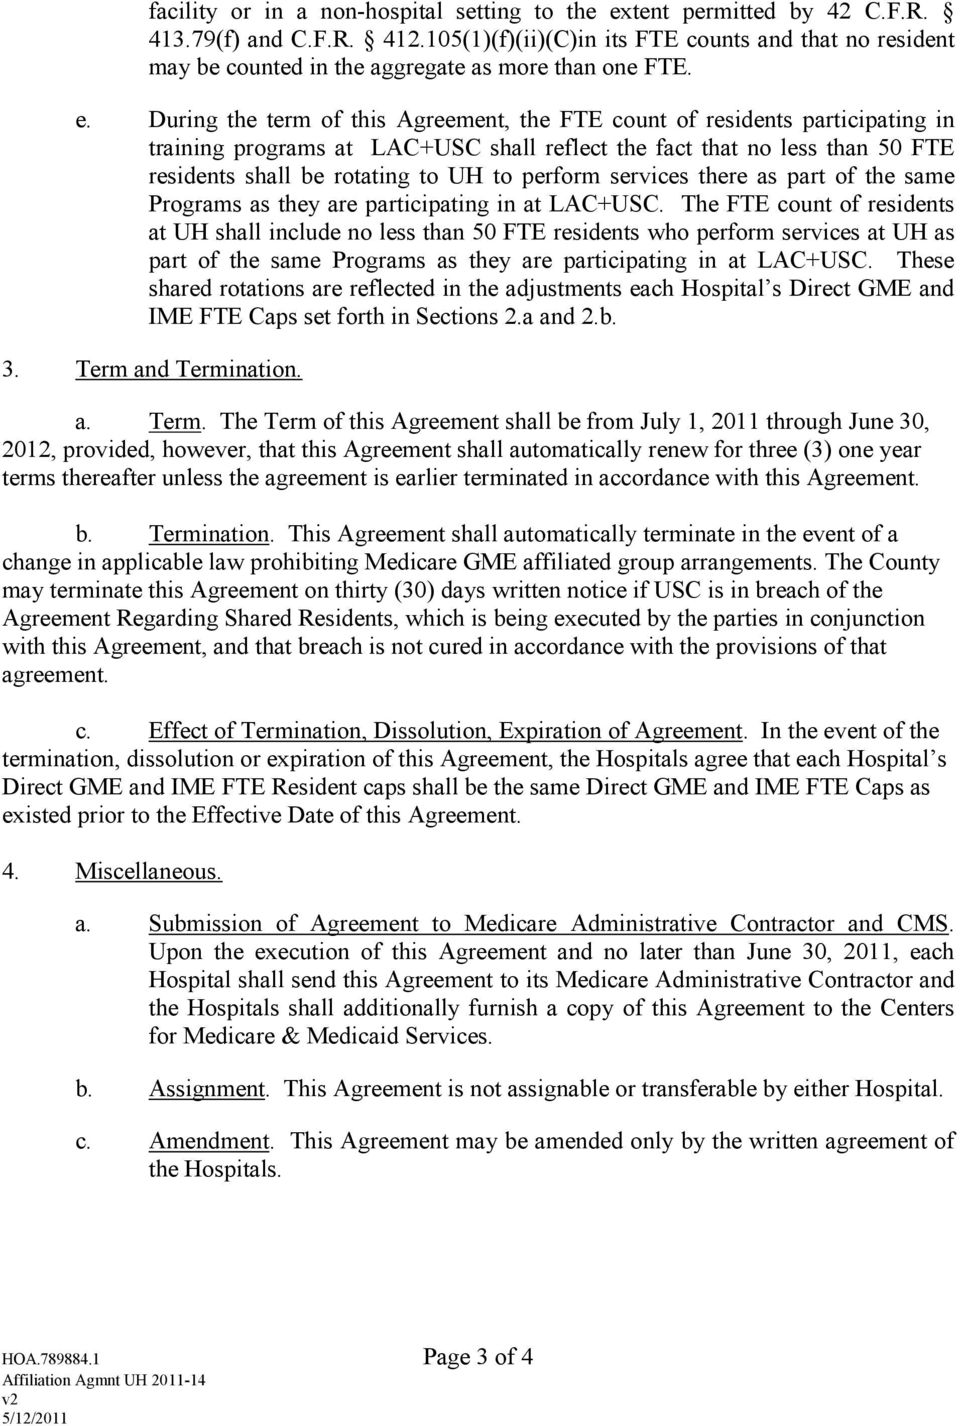 During the term of this Agreement, the FTE count of residents participating in training programs at LAC+USC shall reflect the fact that no less than 50 FTE residents shall be rotating to UH to